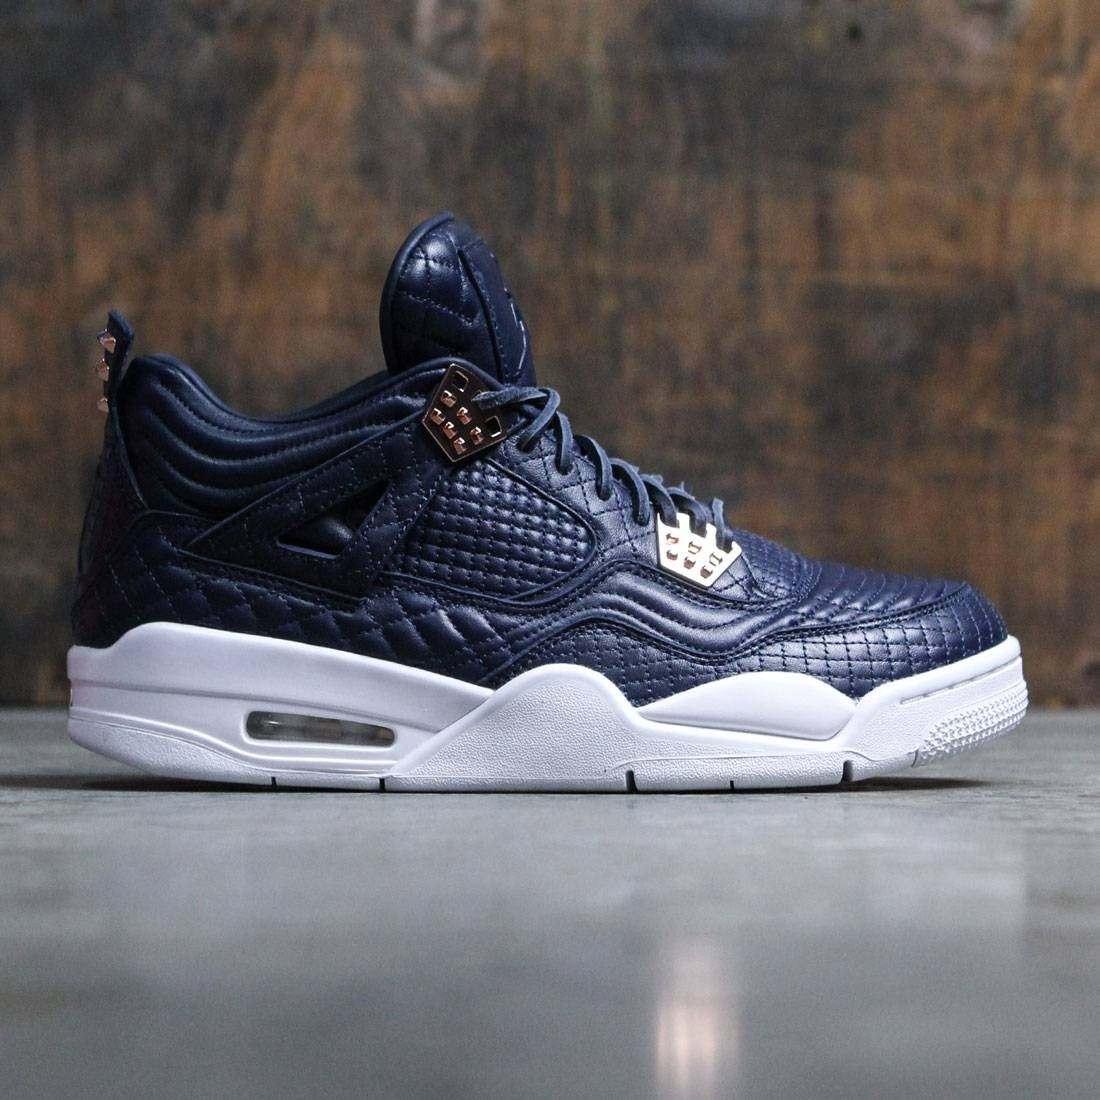 Jordan Men AIR JORDAN 4 RETRO Pinnacle PREMIUM (navy / obsidian / obsidian-white)